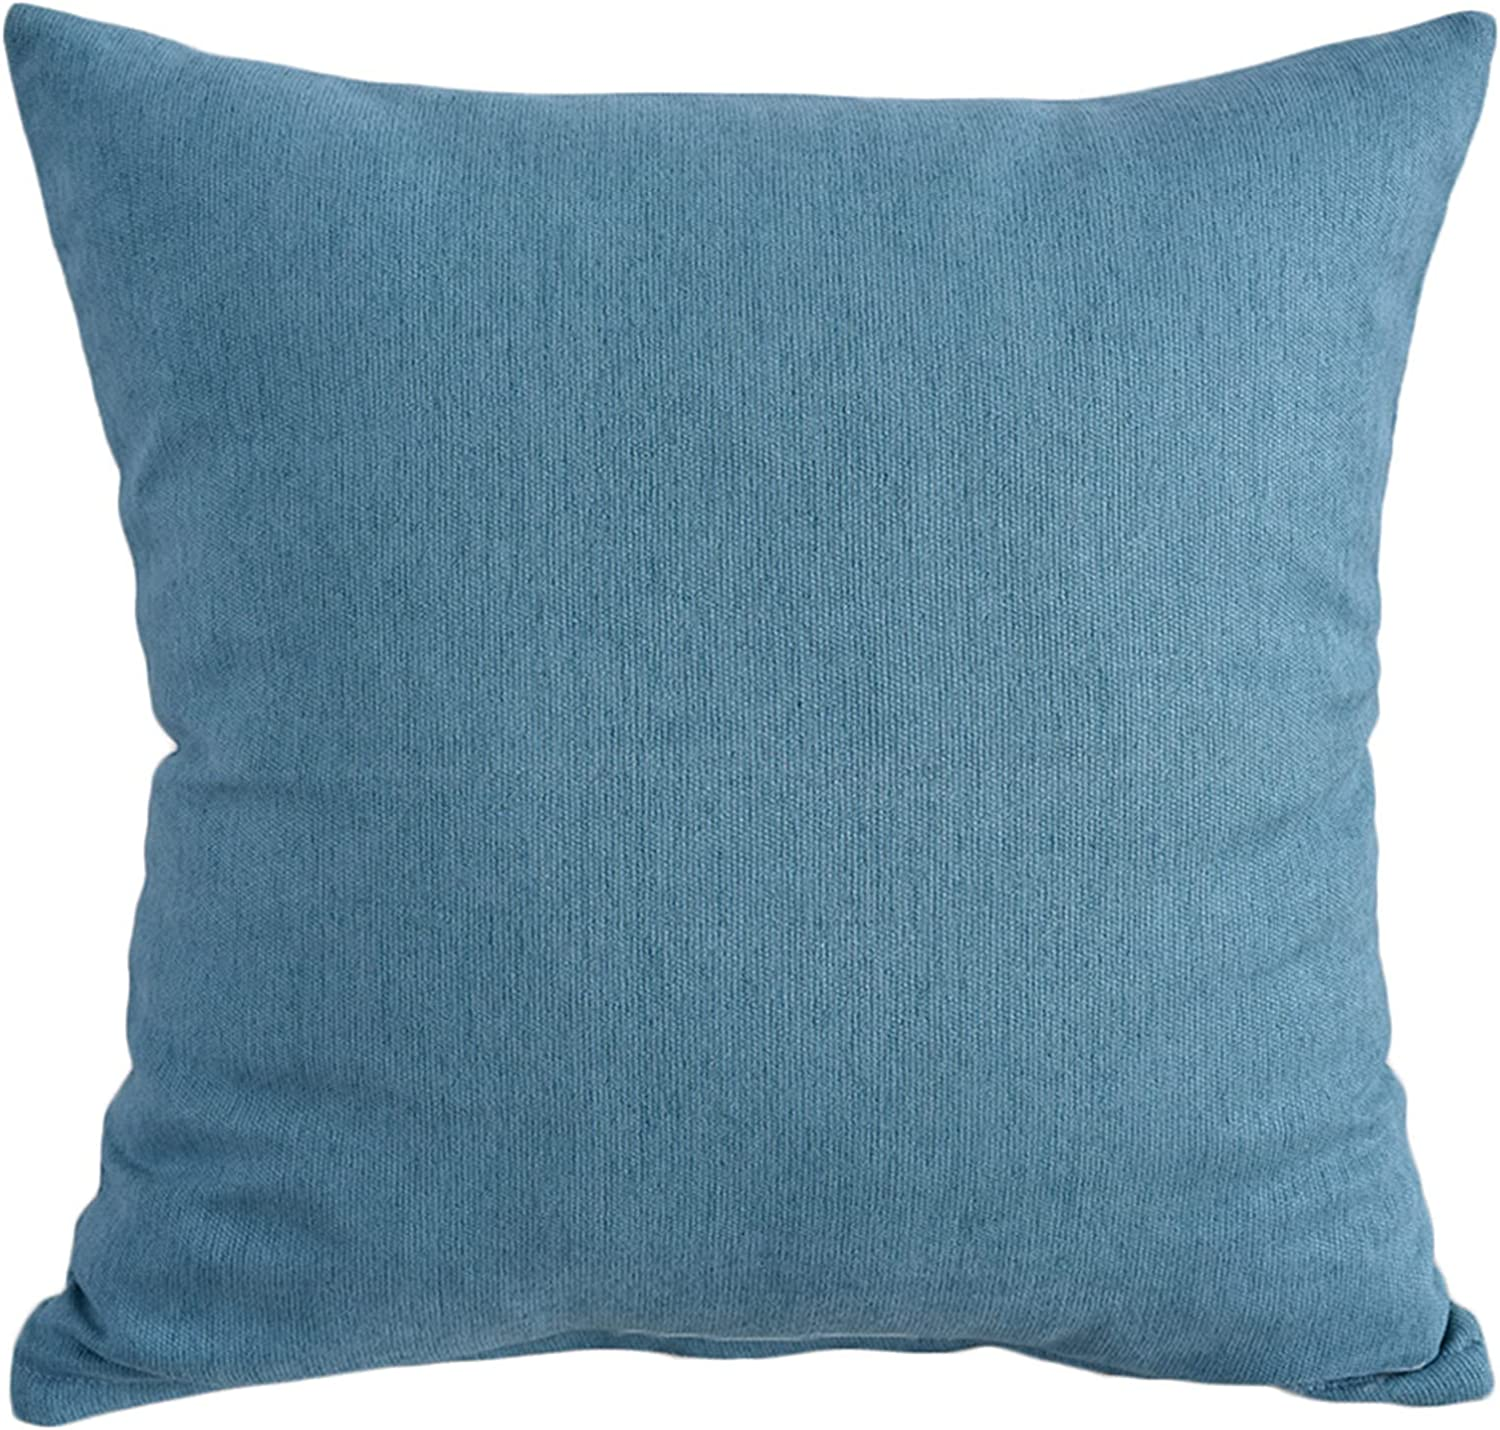 wholesale Cushion Max 79% OFF Cover Square Decorative and Removable Pillowcase Washa